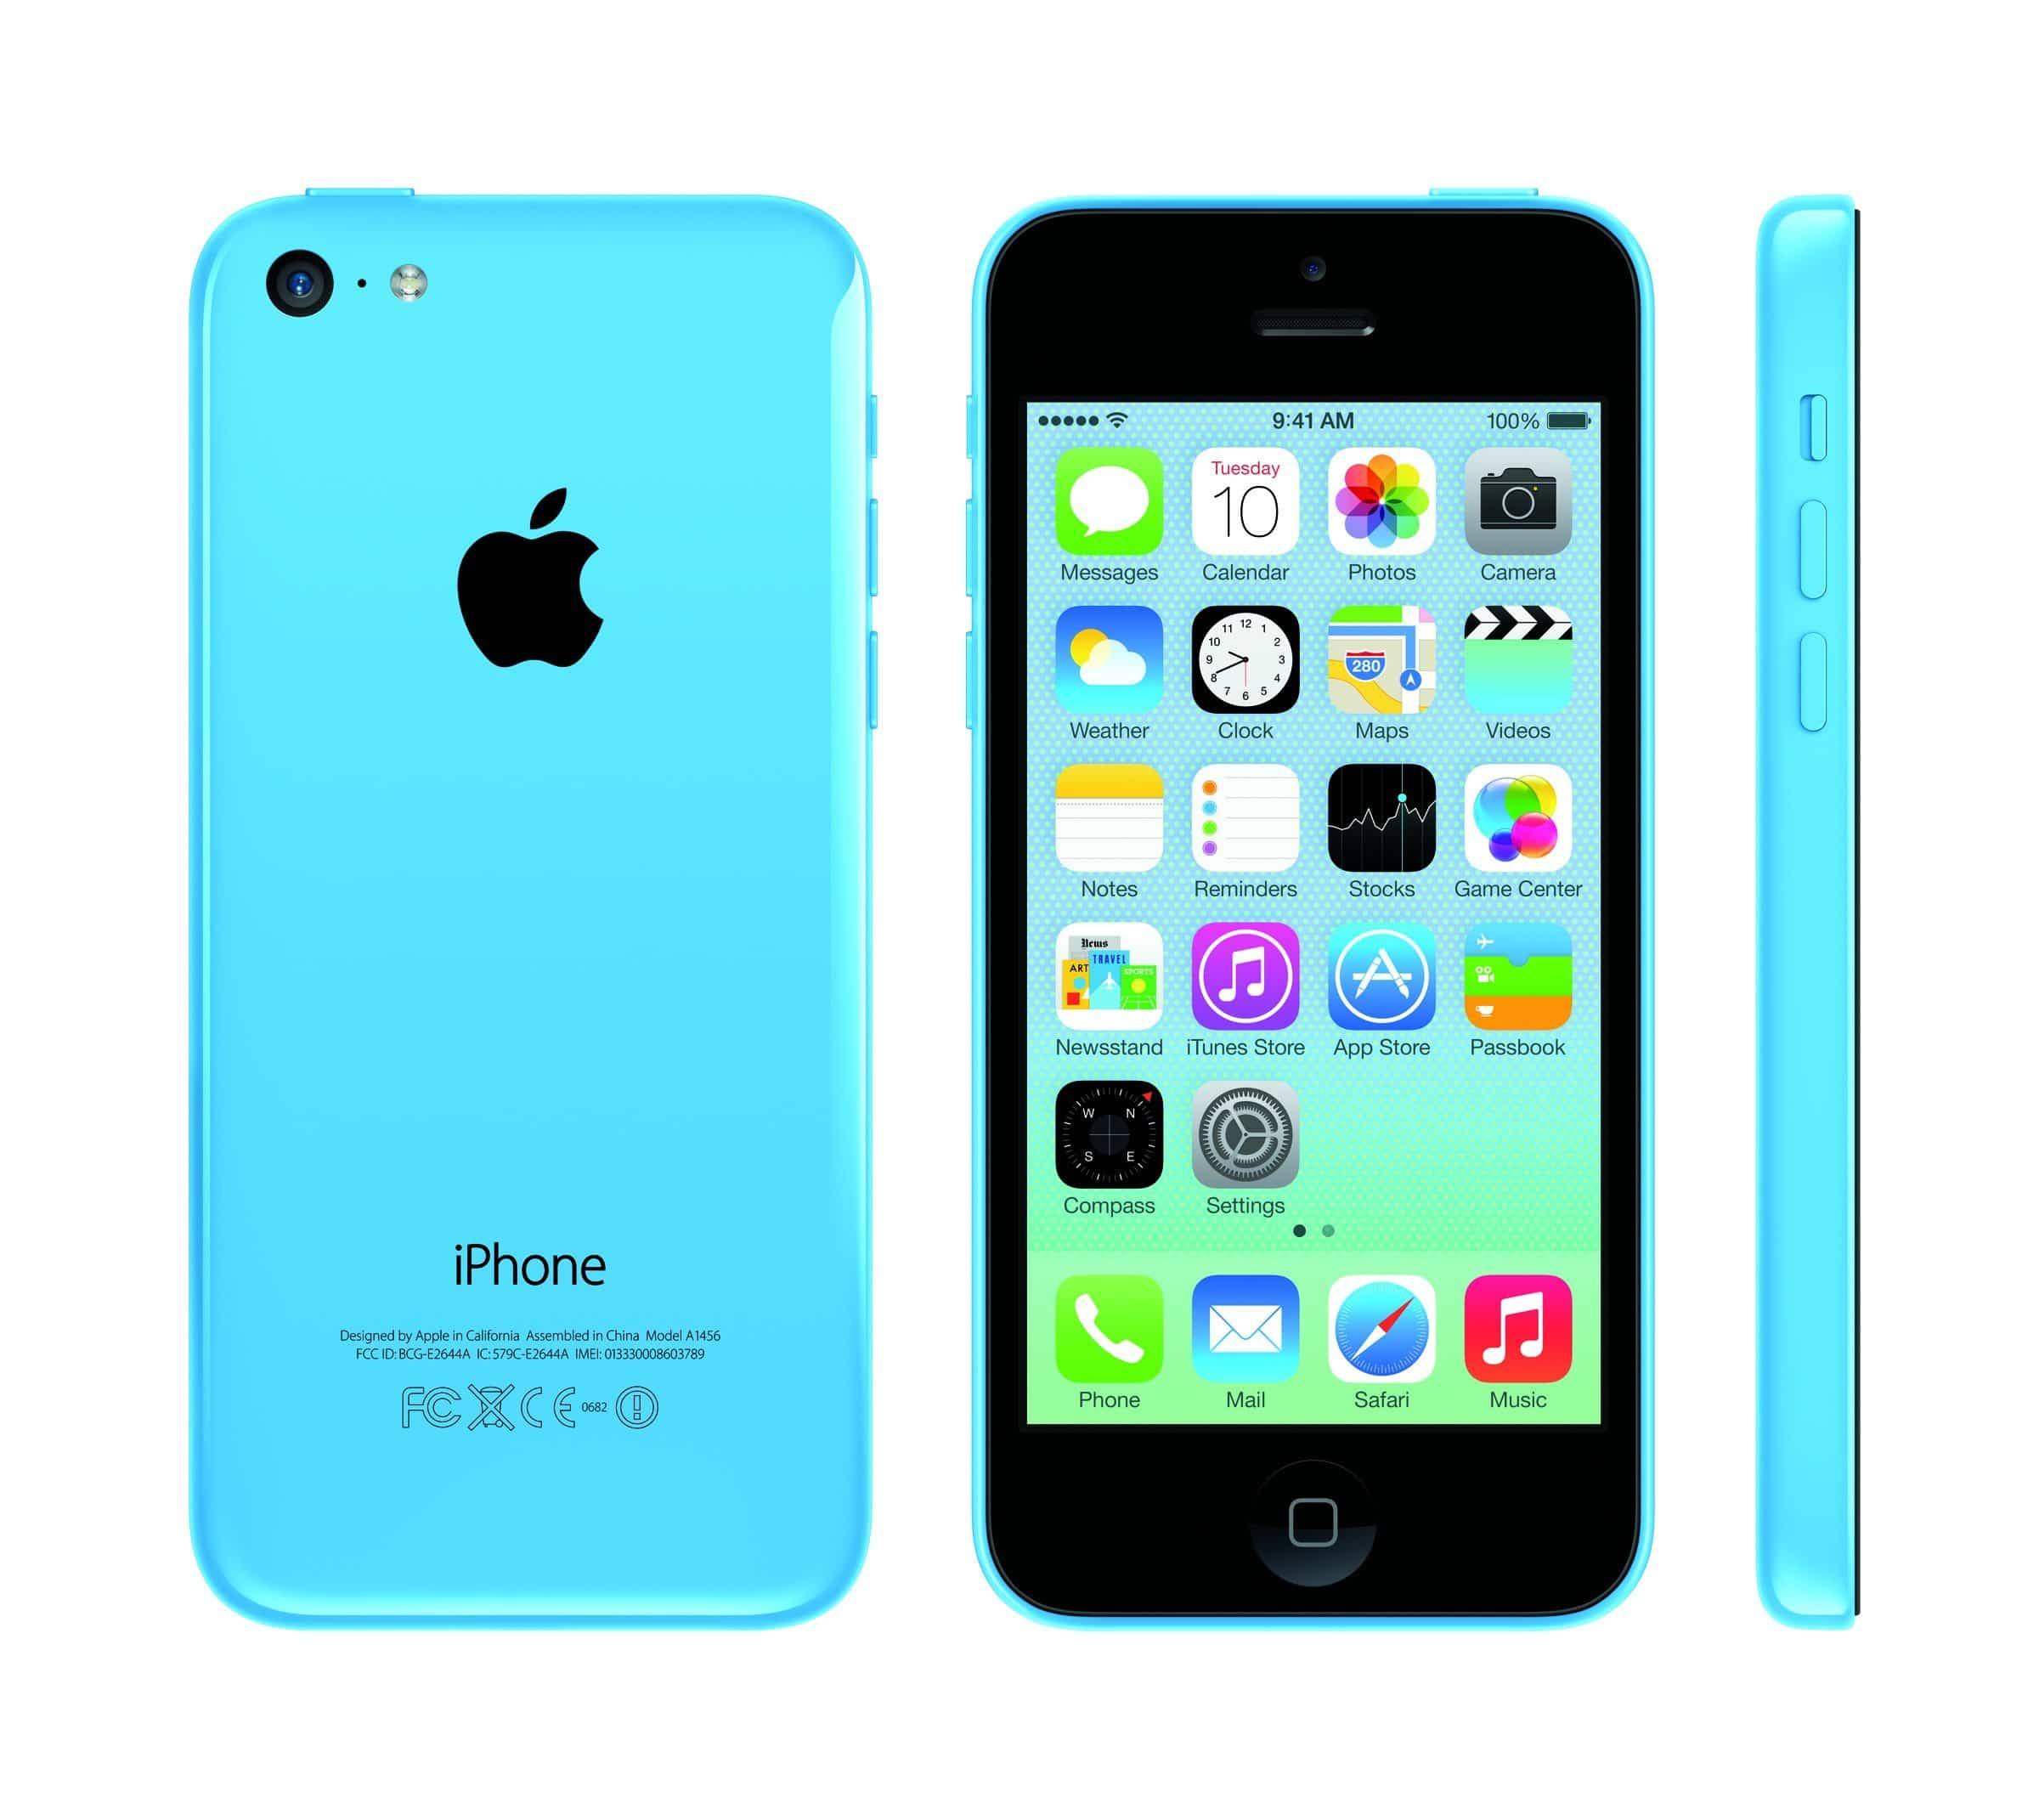 iPhone 5c in Blau